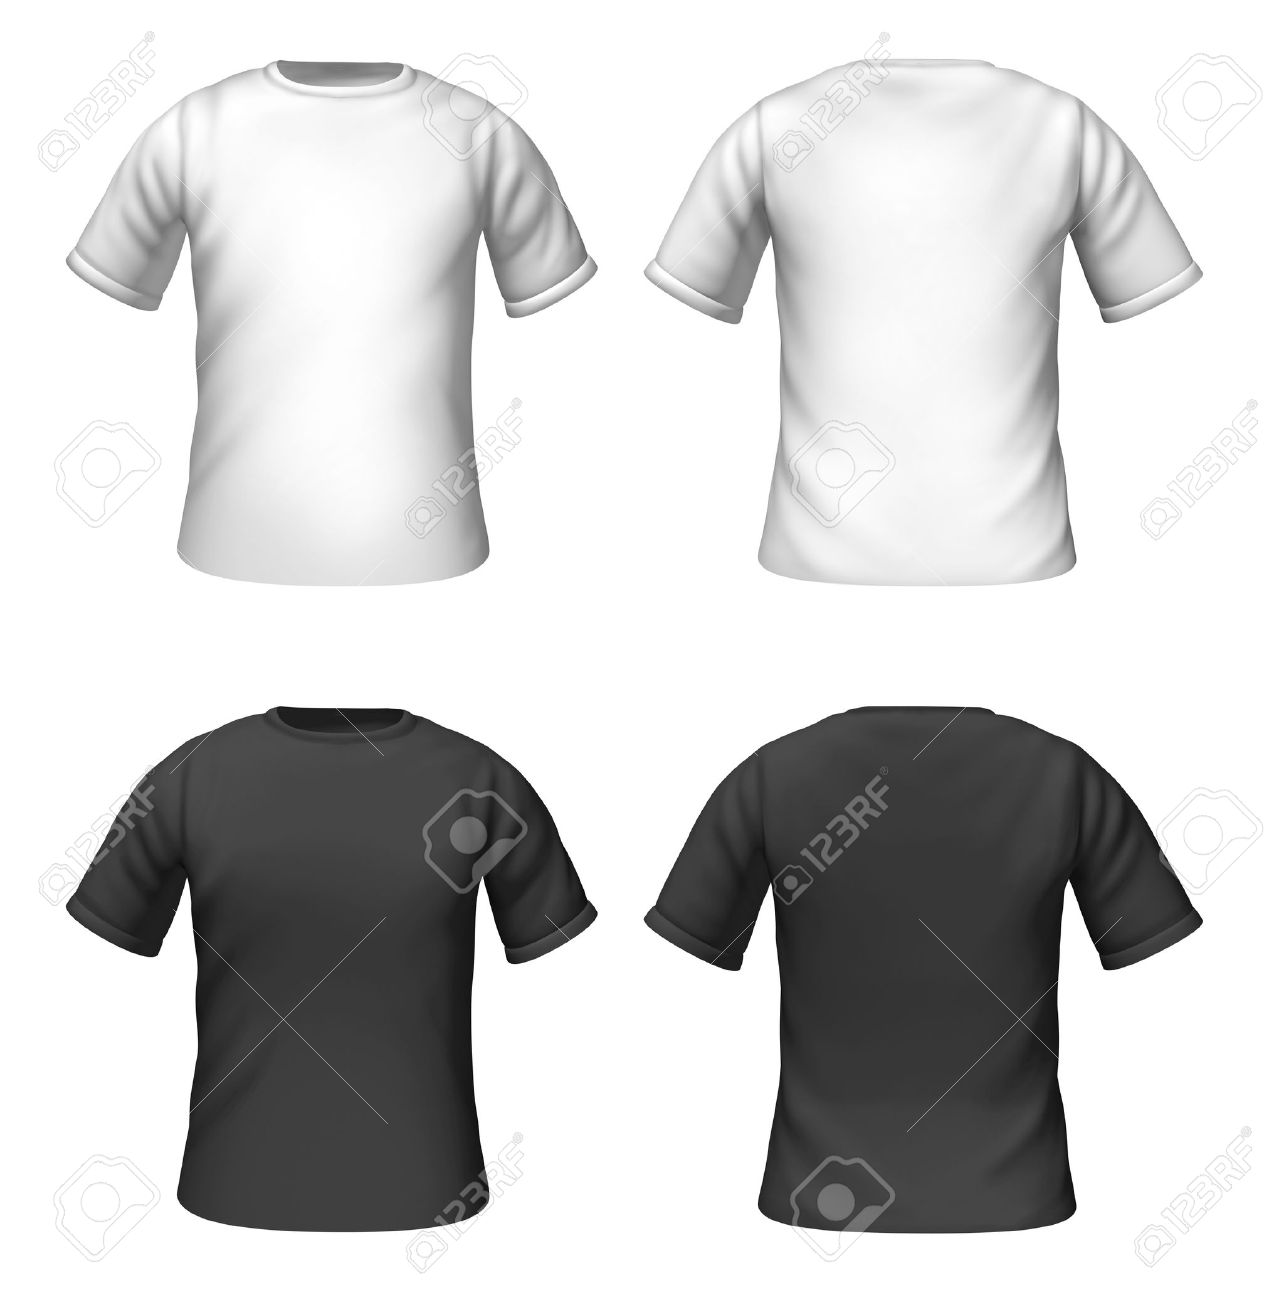 Blank T Shirts Template With Black And White Colors Representing Stock Photo Picture And Royalty Free Image Image 10542705